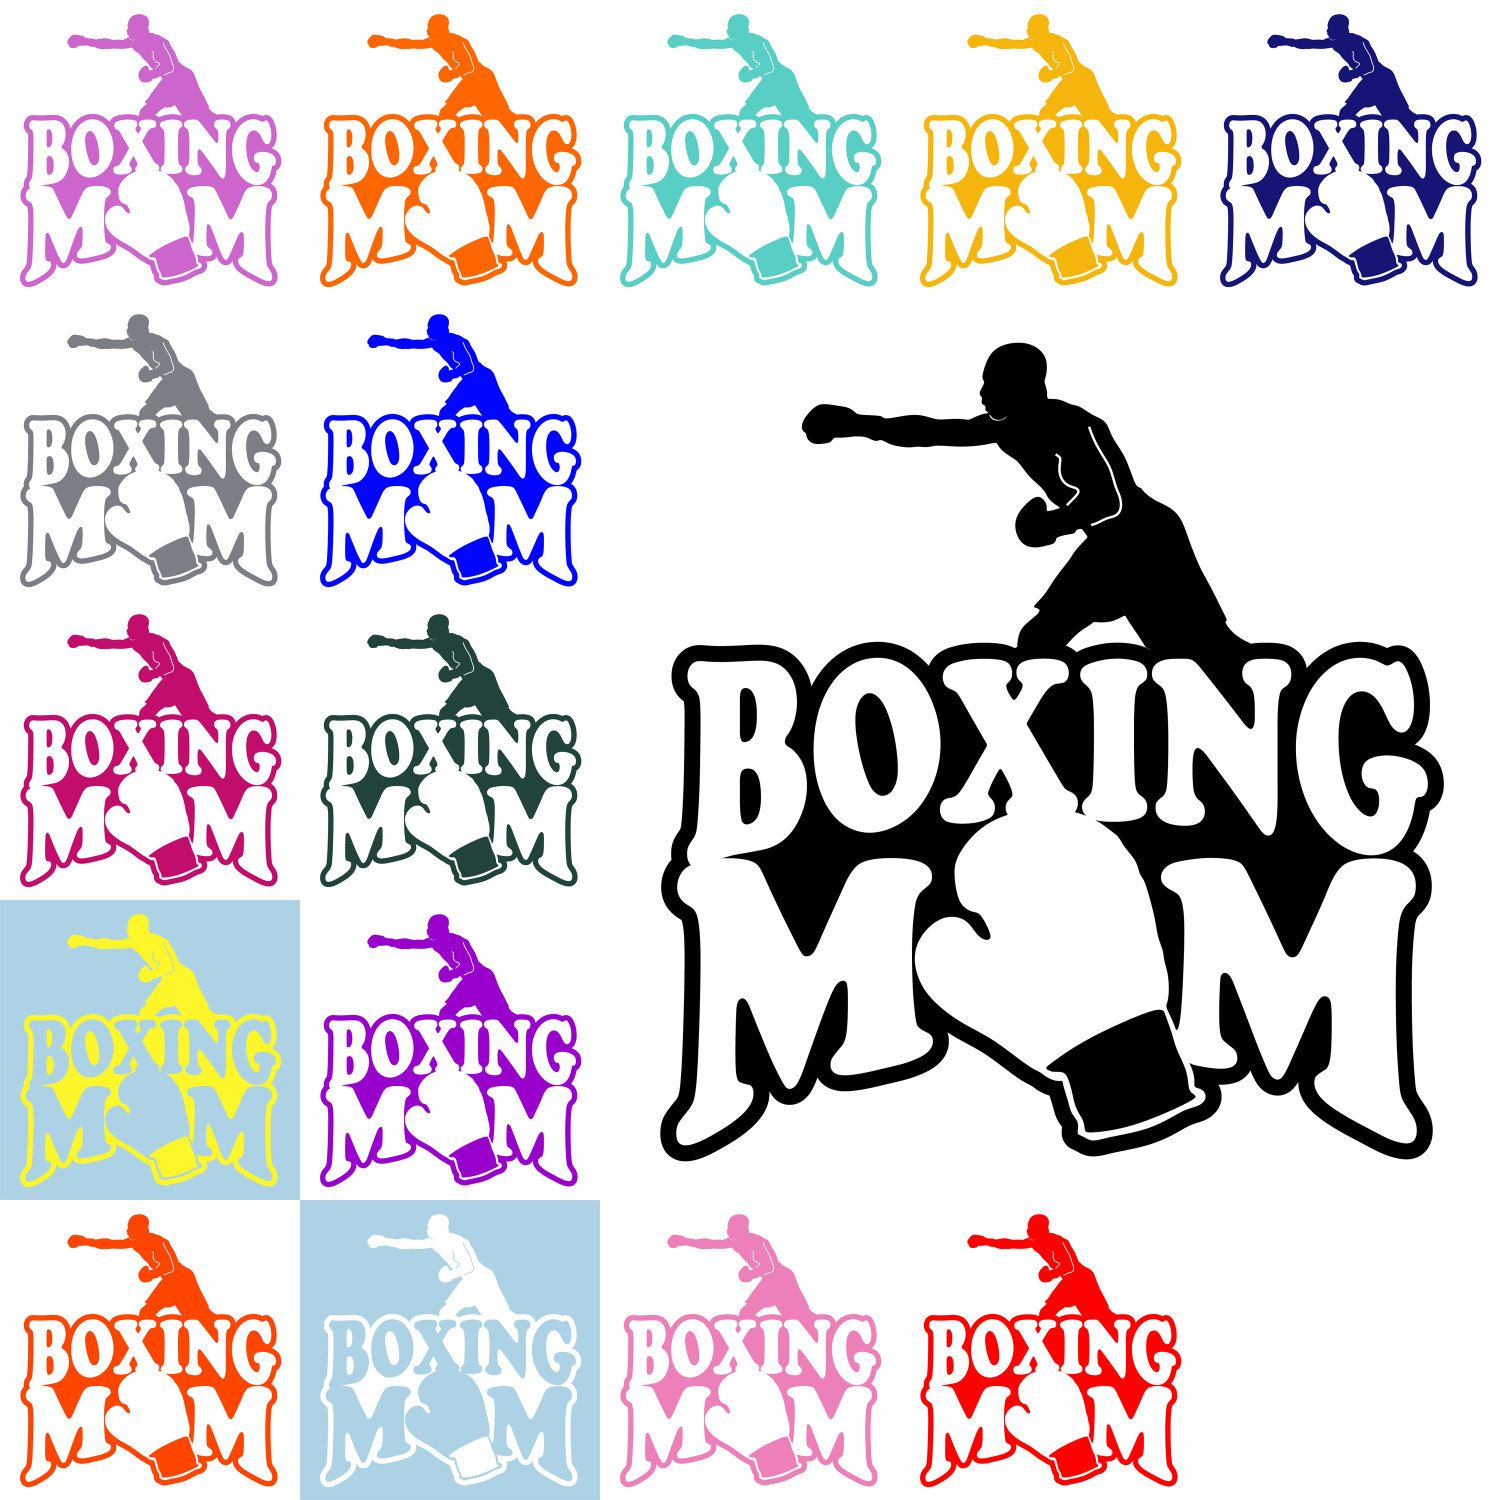 Boxingl Mom Decal Boxing Mom Sticker Mom Decal Sports Mom Decal Vinyl Decal Car Decal Boxing Boxer Automo Car Decals Vinyl Car Decals Sports Mom [ 1500 x 1500 Pixel ]